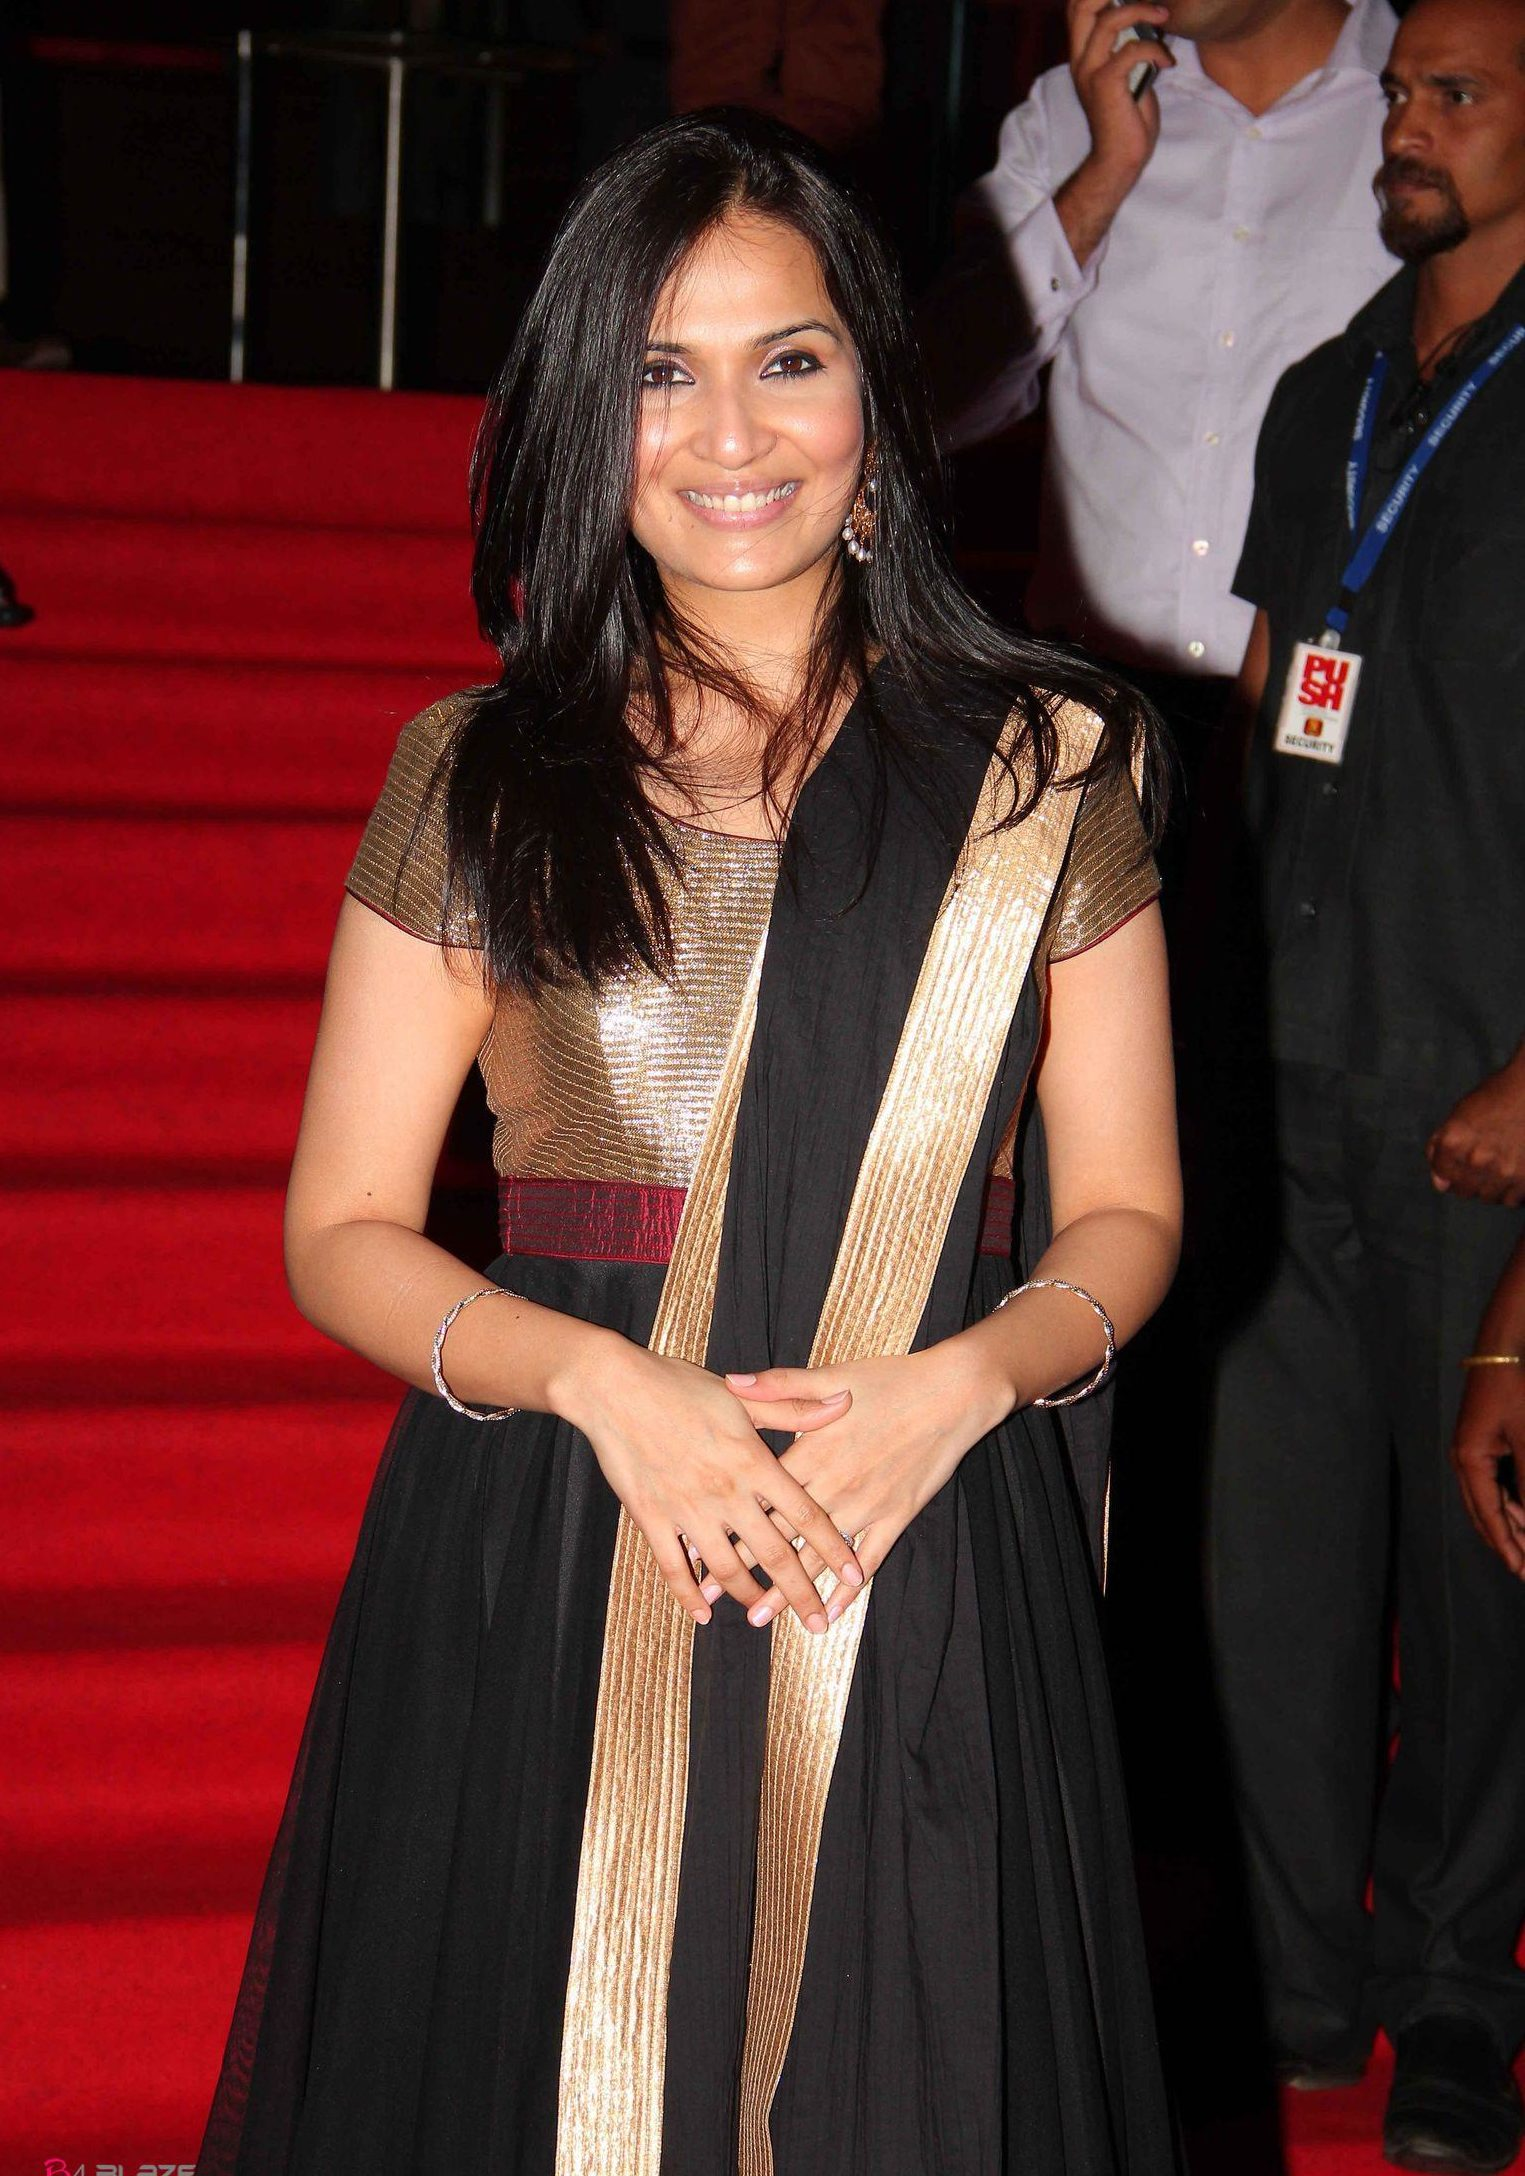 soundarya rajinikanth images